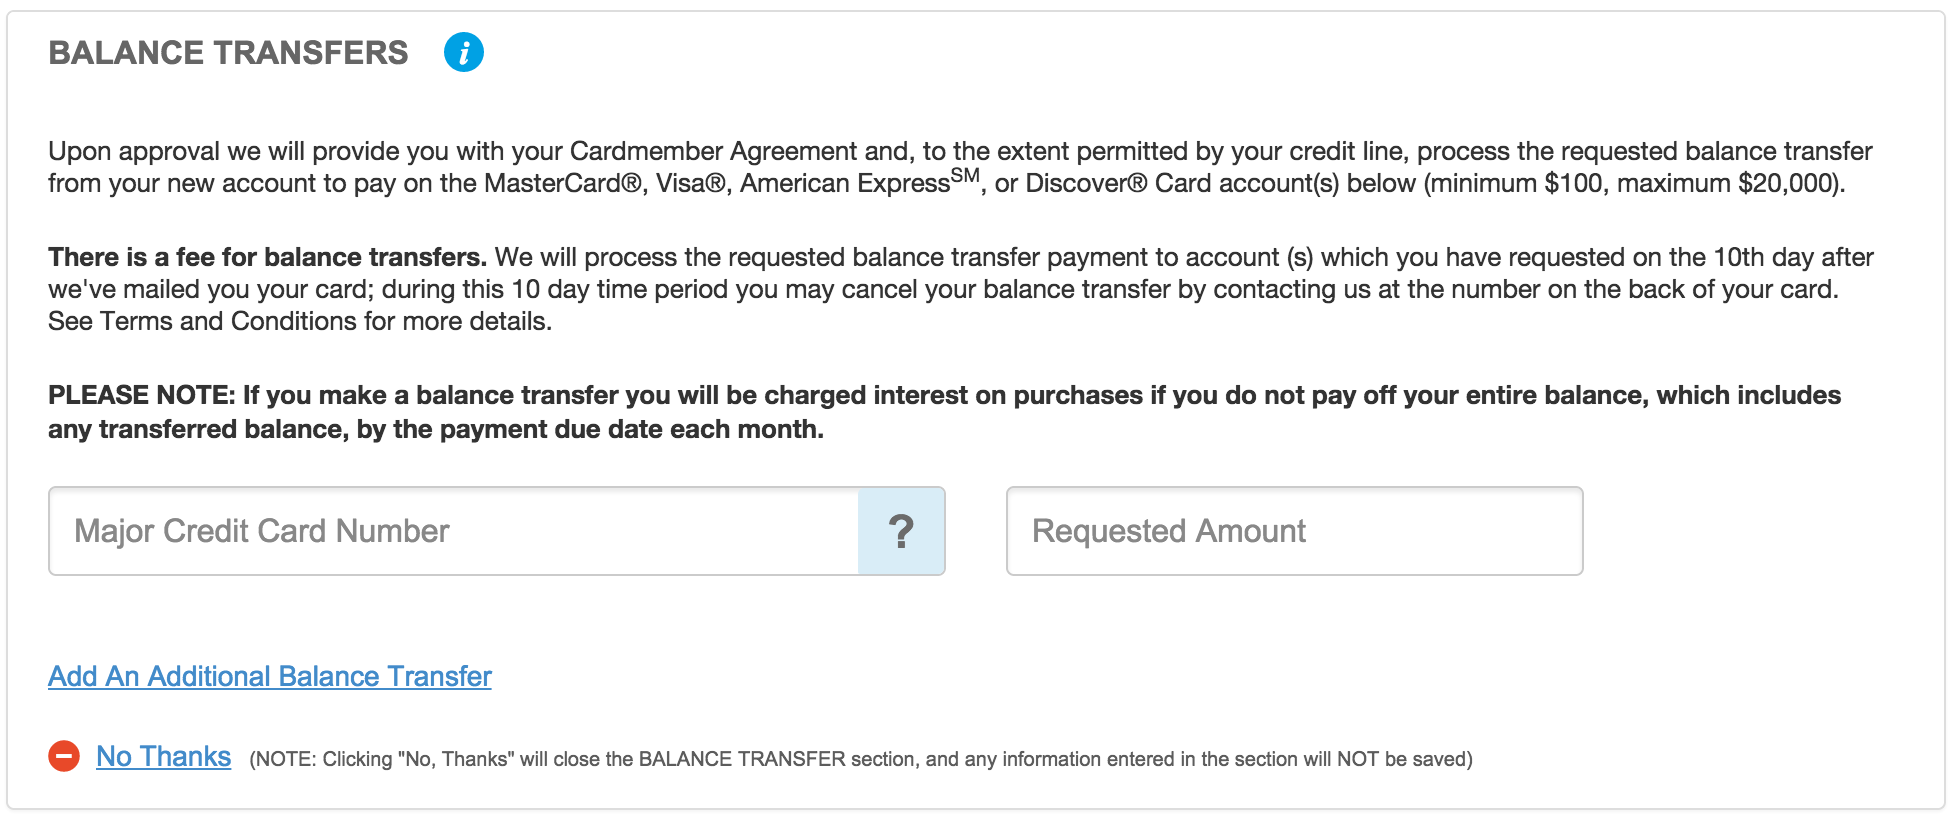 barclaycard terms and conditions pdf